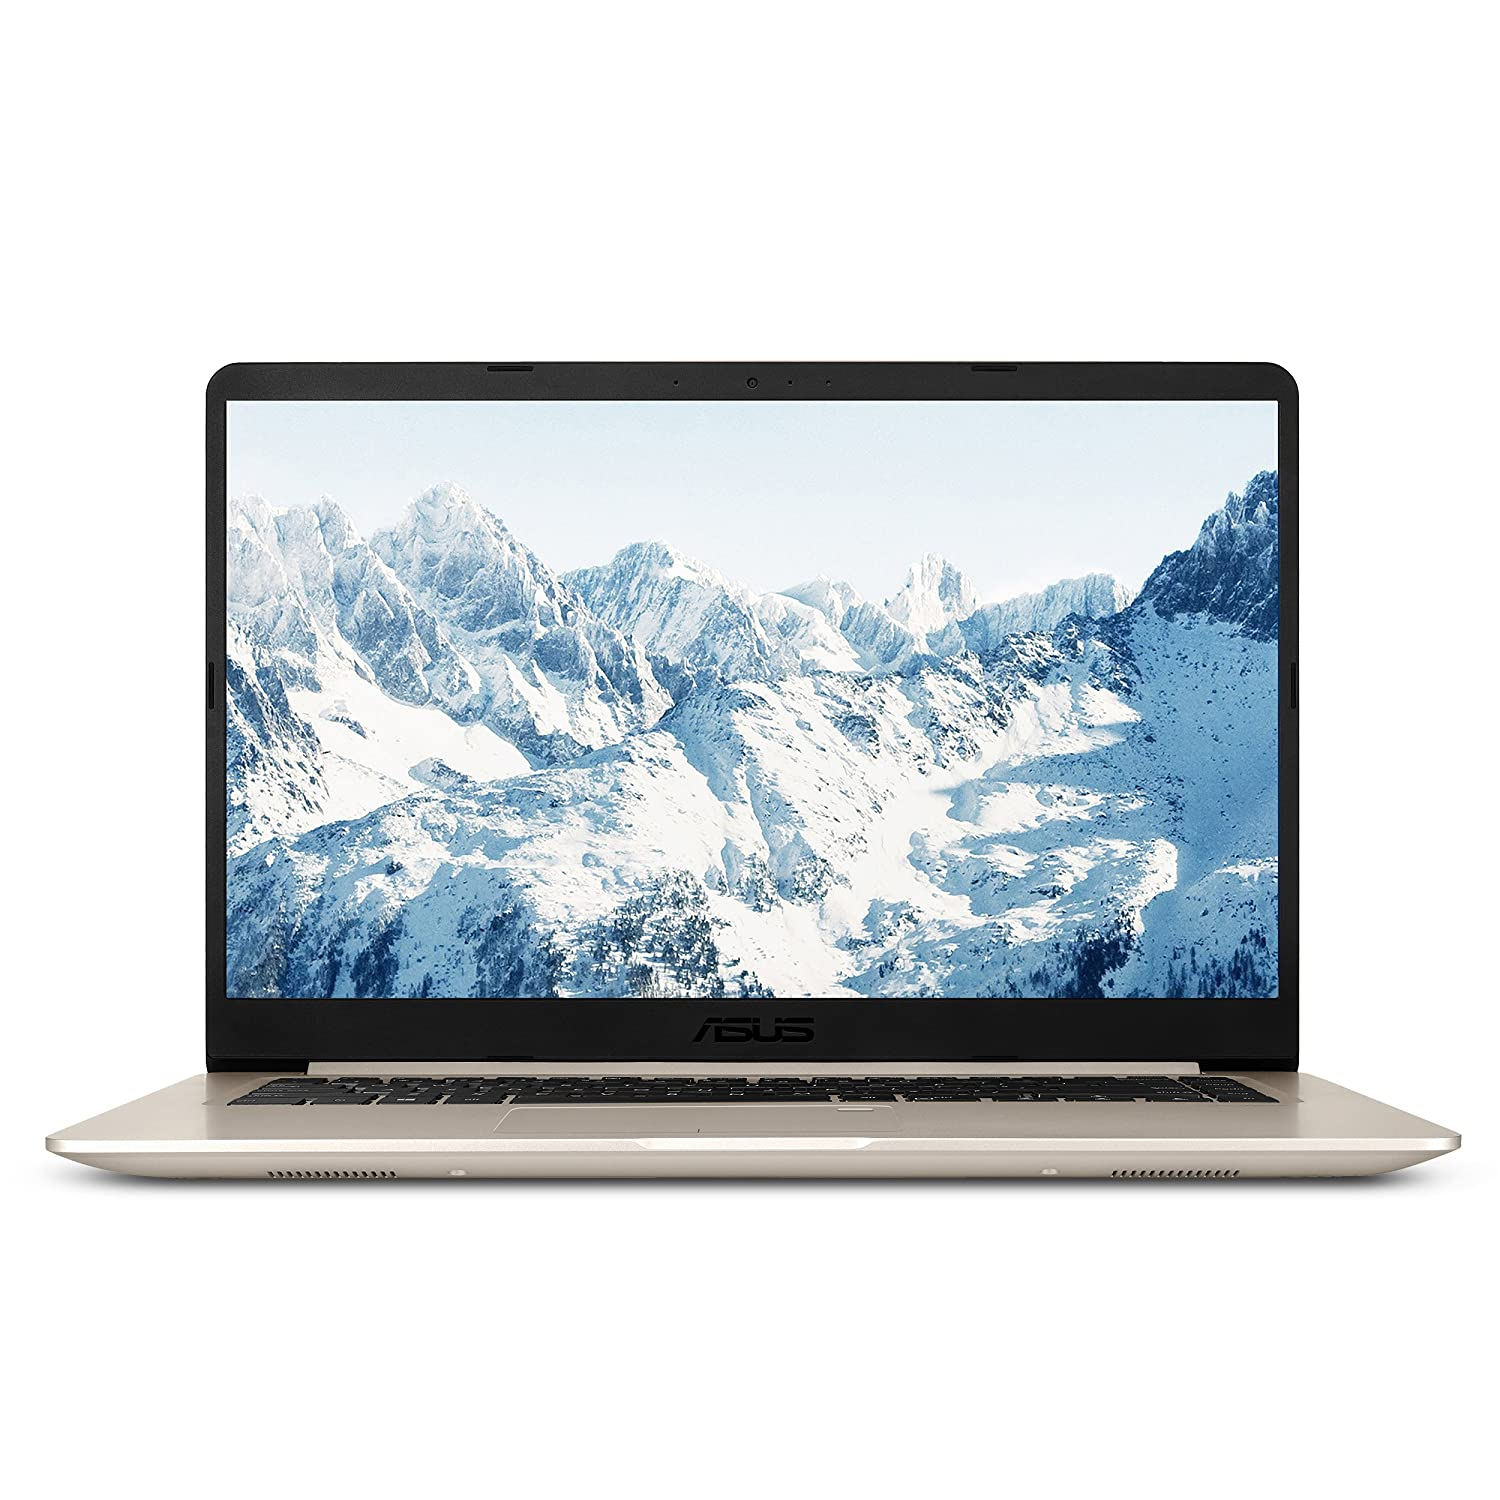 "ASUS VivoBook S 15 6"" Full HD Laptop, Intel i7-7500U 2 7GHz, 8GB RAM, 128GB  SSD + 1TB HDD, Windows 10, Fingerprint Sensor, Backlit Keyboard"